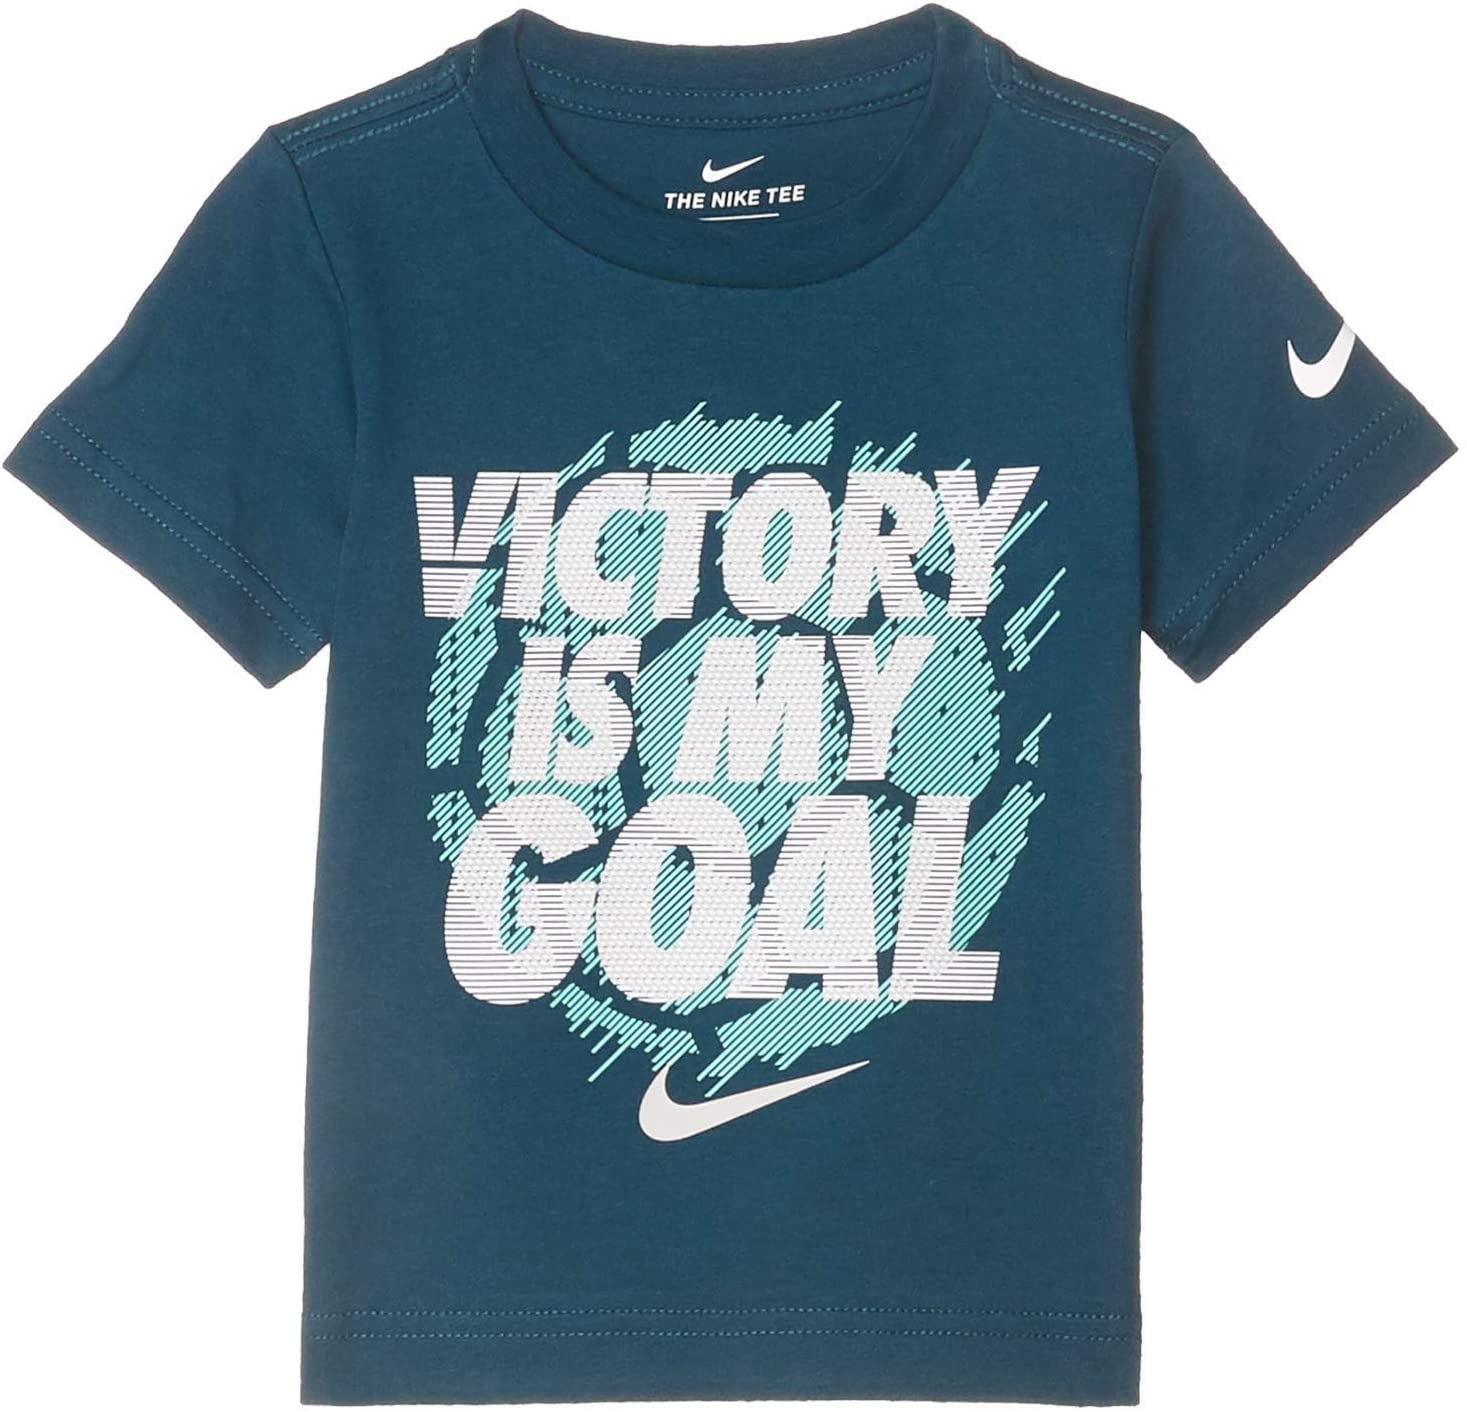 Nike Kids Baby Boy's Victory is My Goal Tee (Toddler)